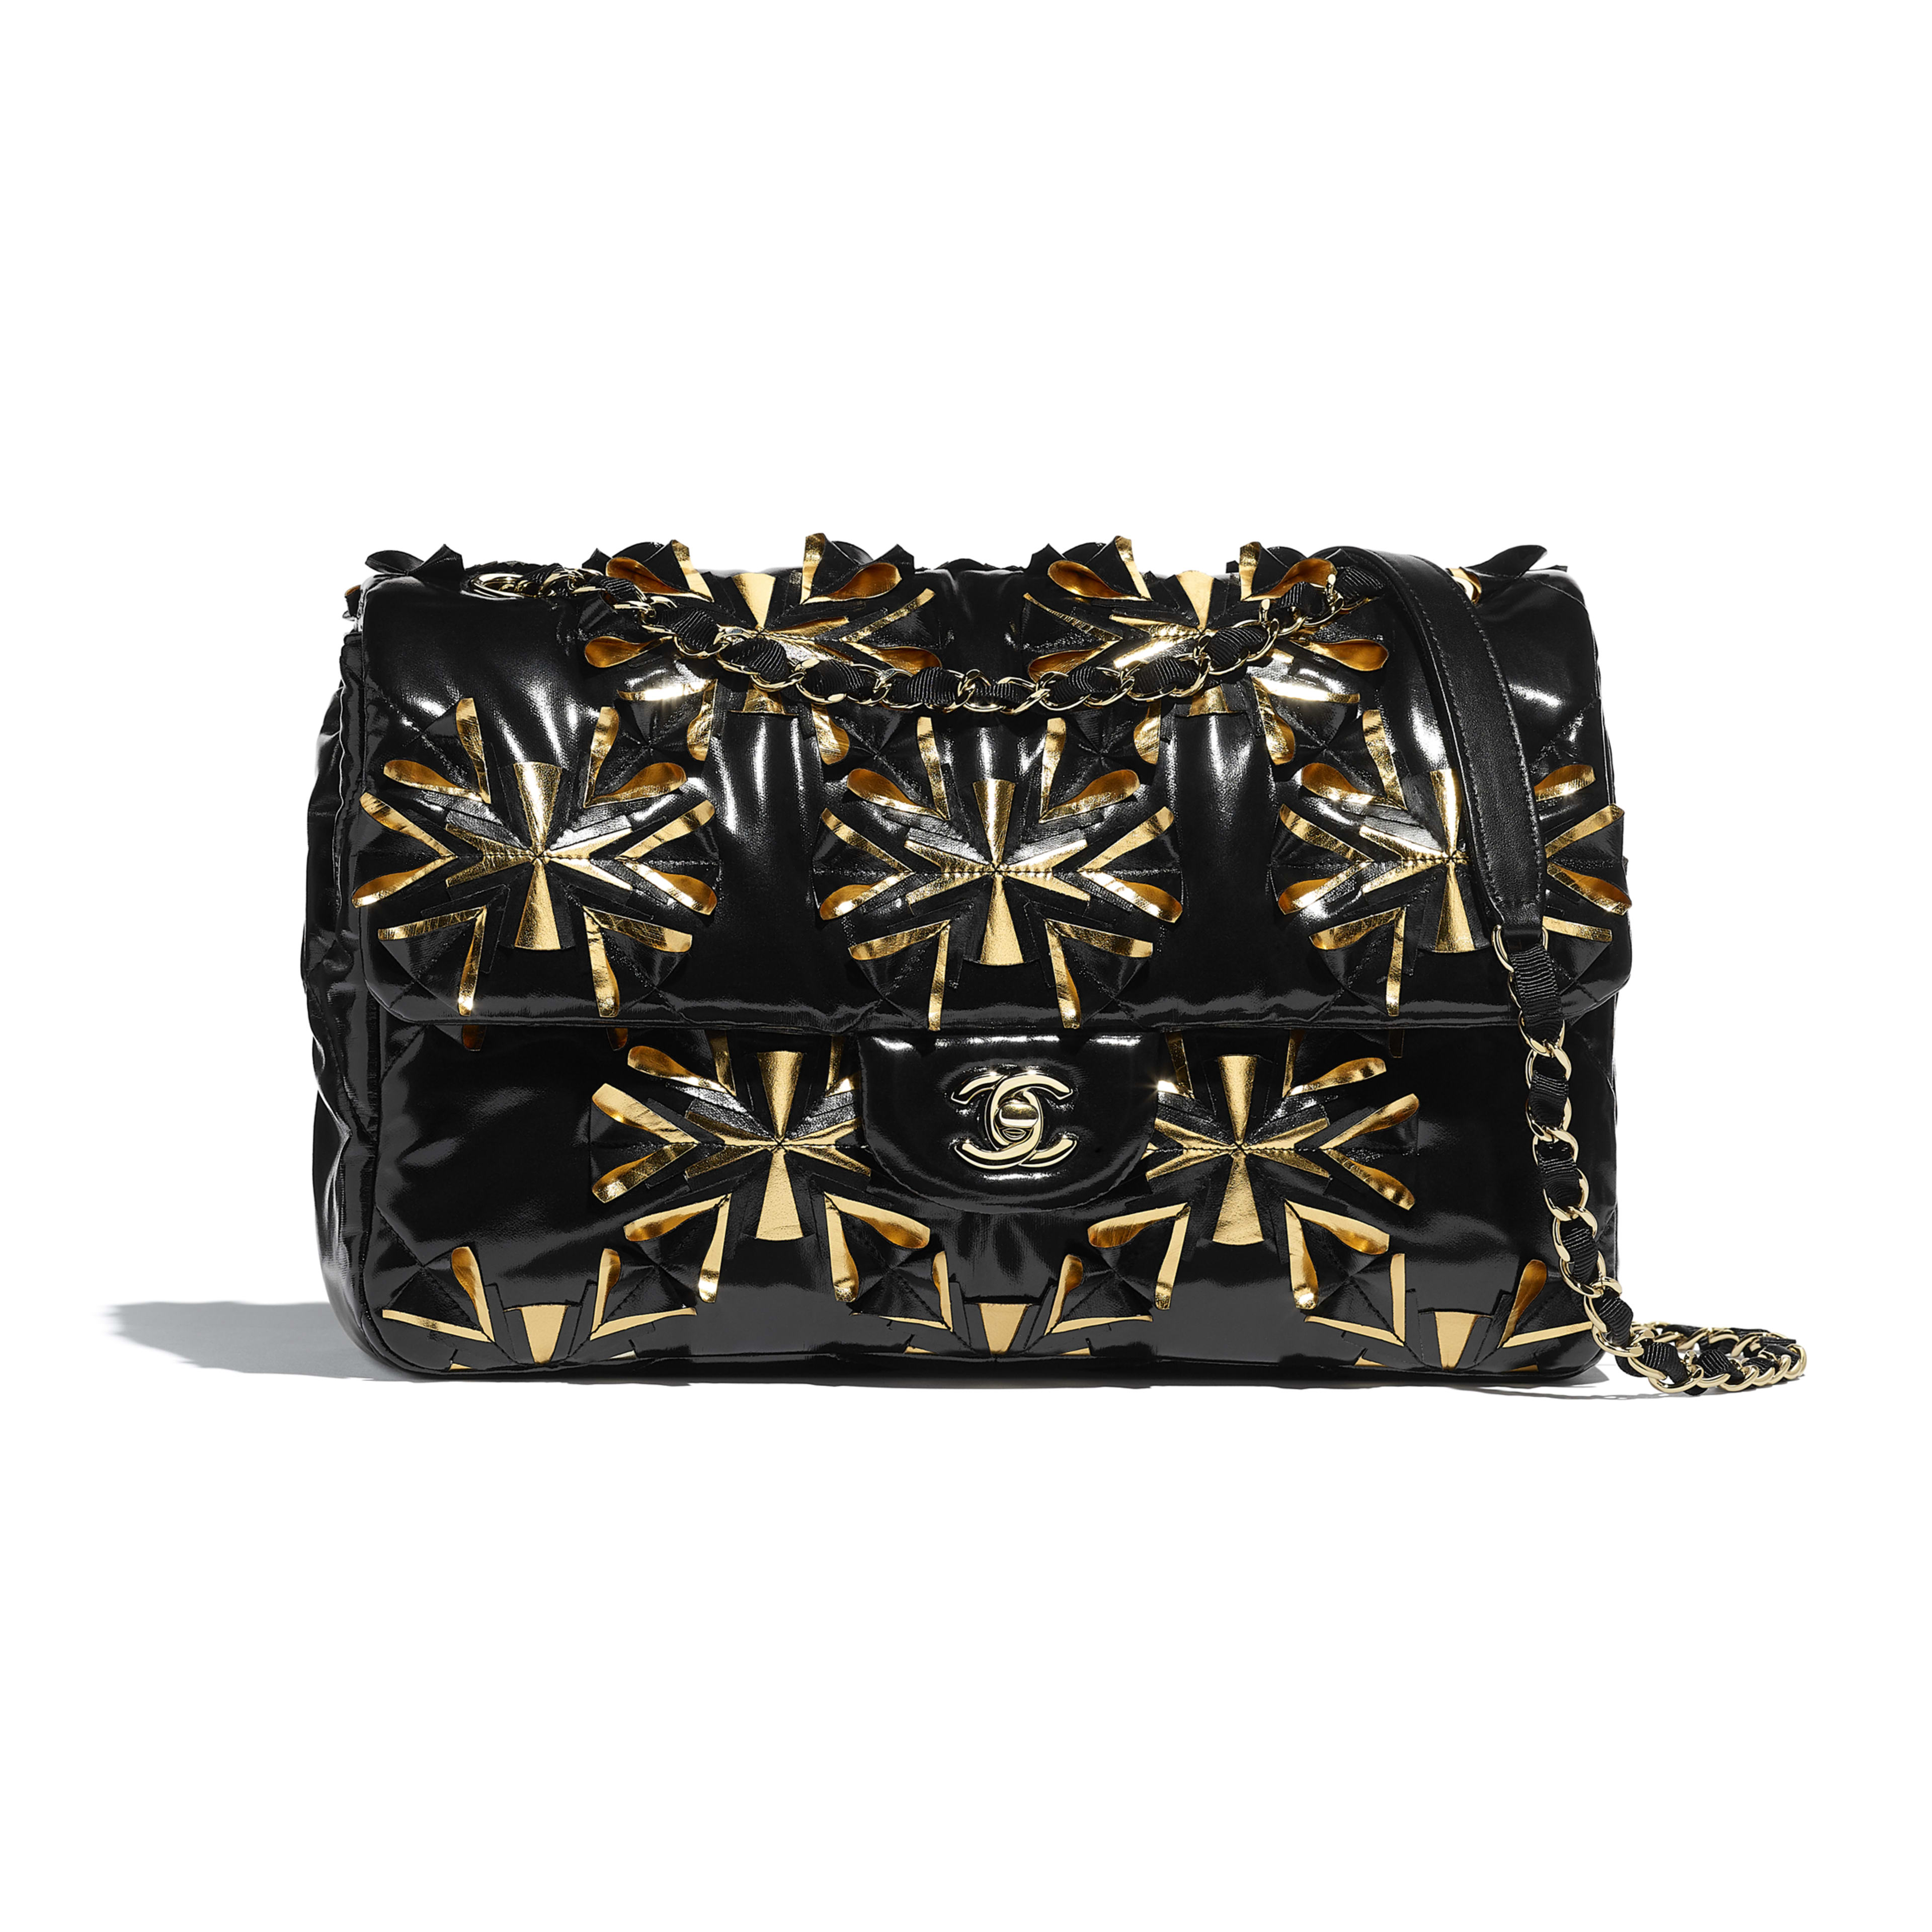 Flap Bag - Black & Gold - Embroidered Vinyl & Gold-Tone Metal - Default view - see full sized version